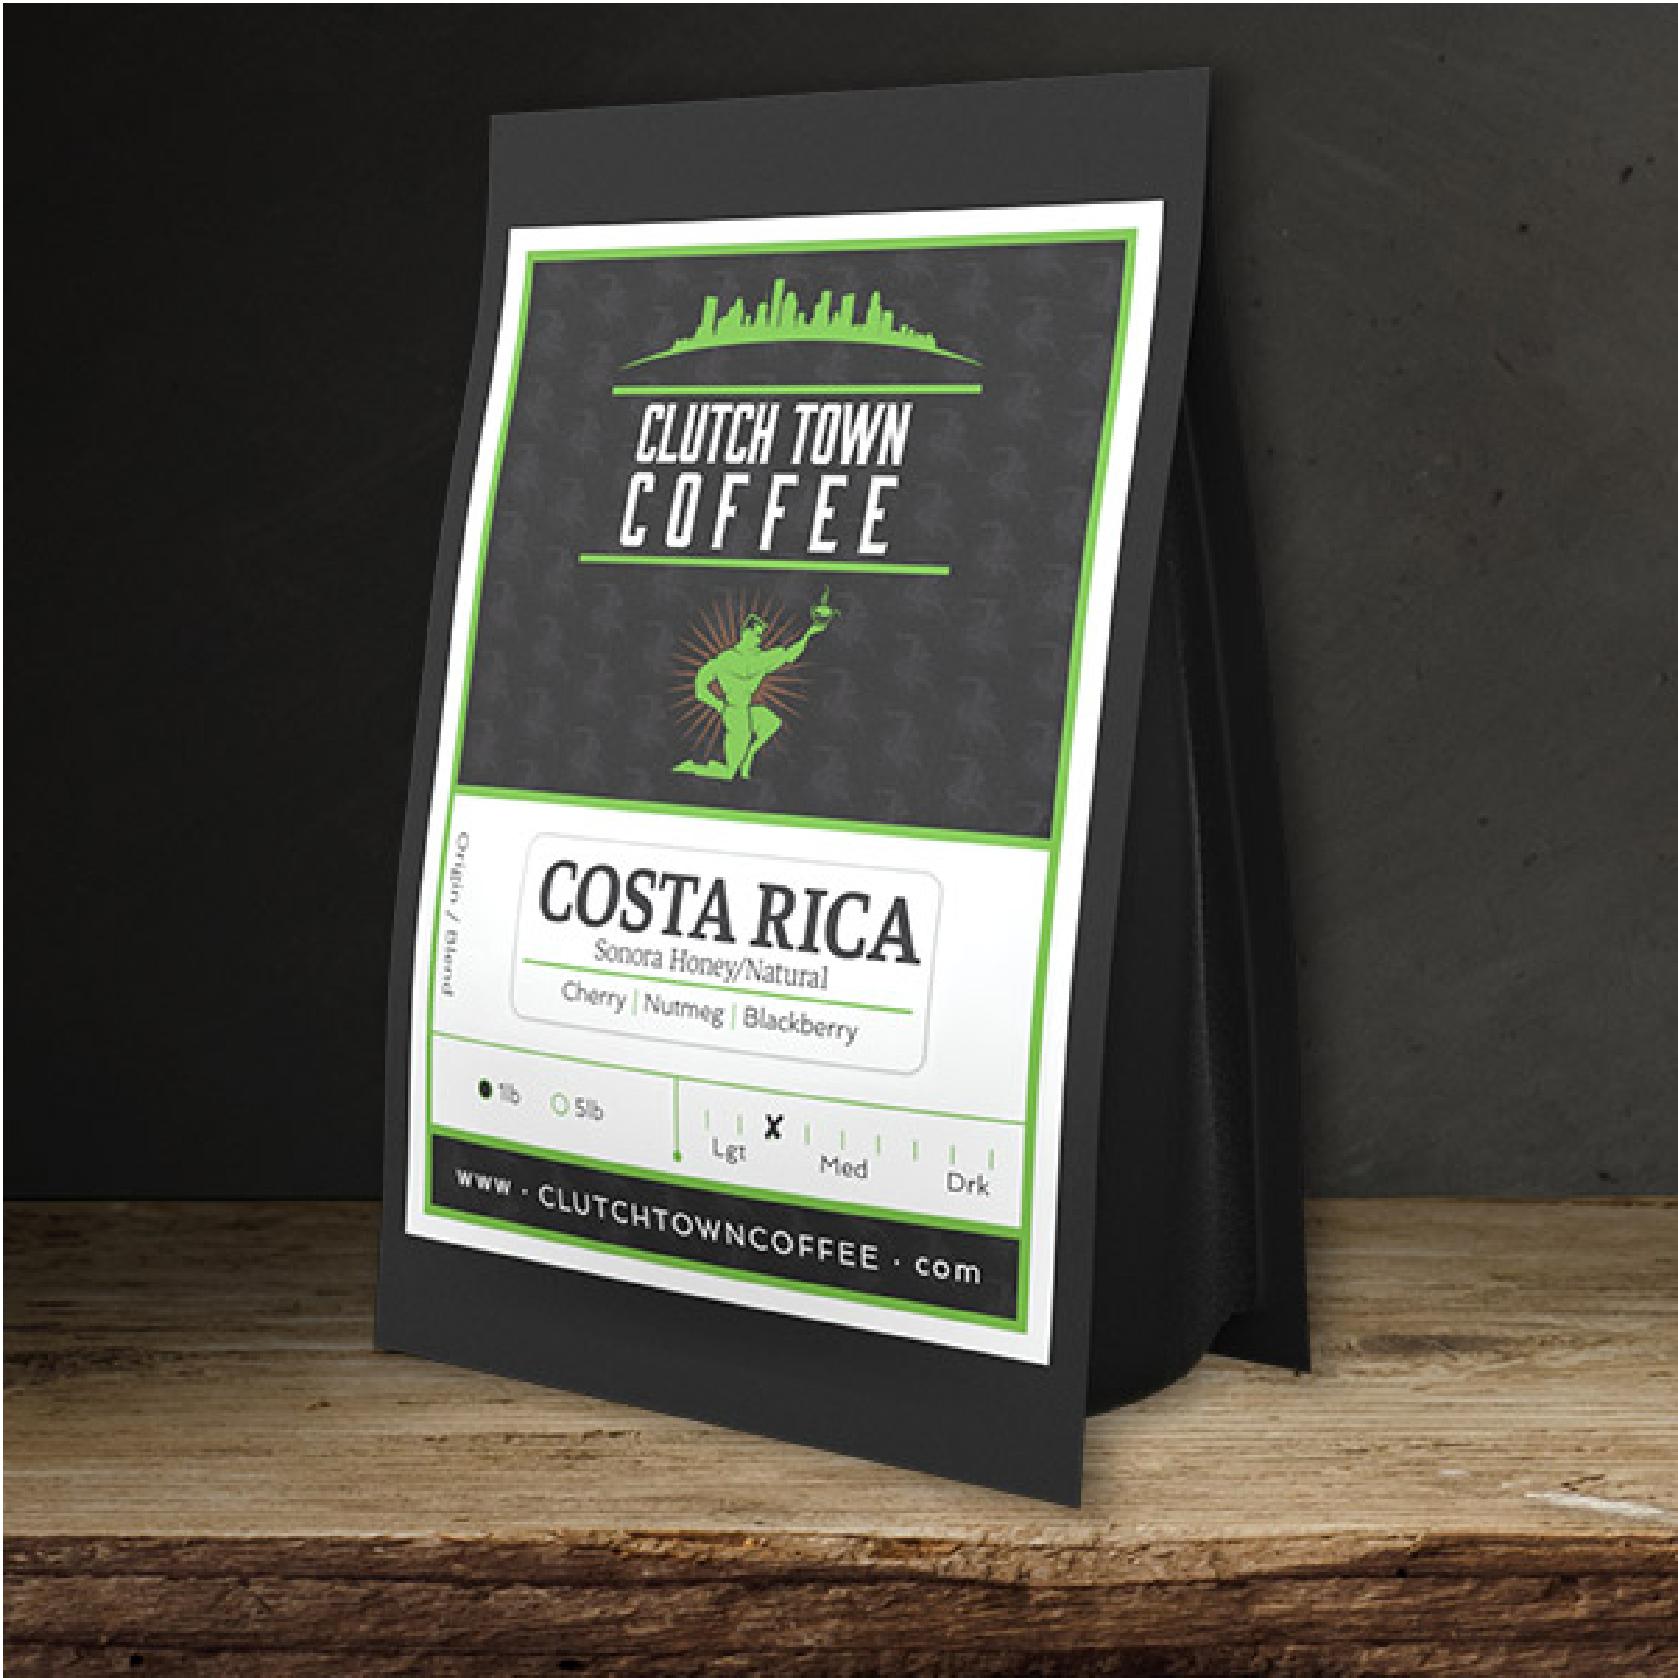 Costa Rica from Clutch Town Coffee